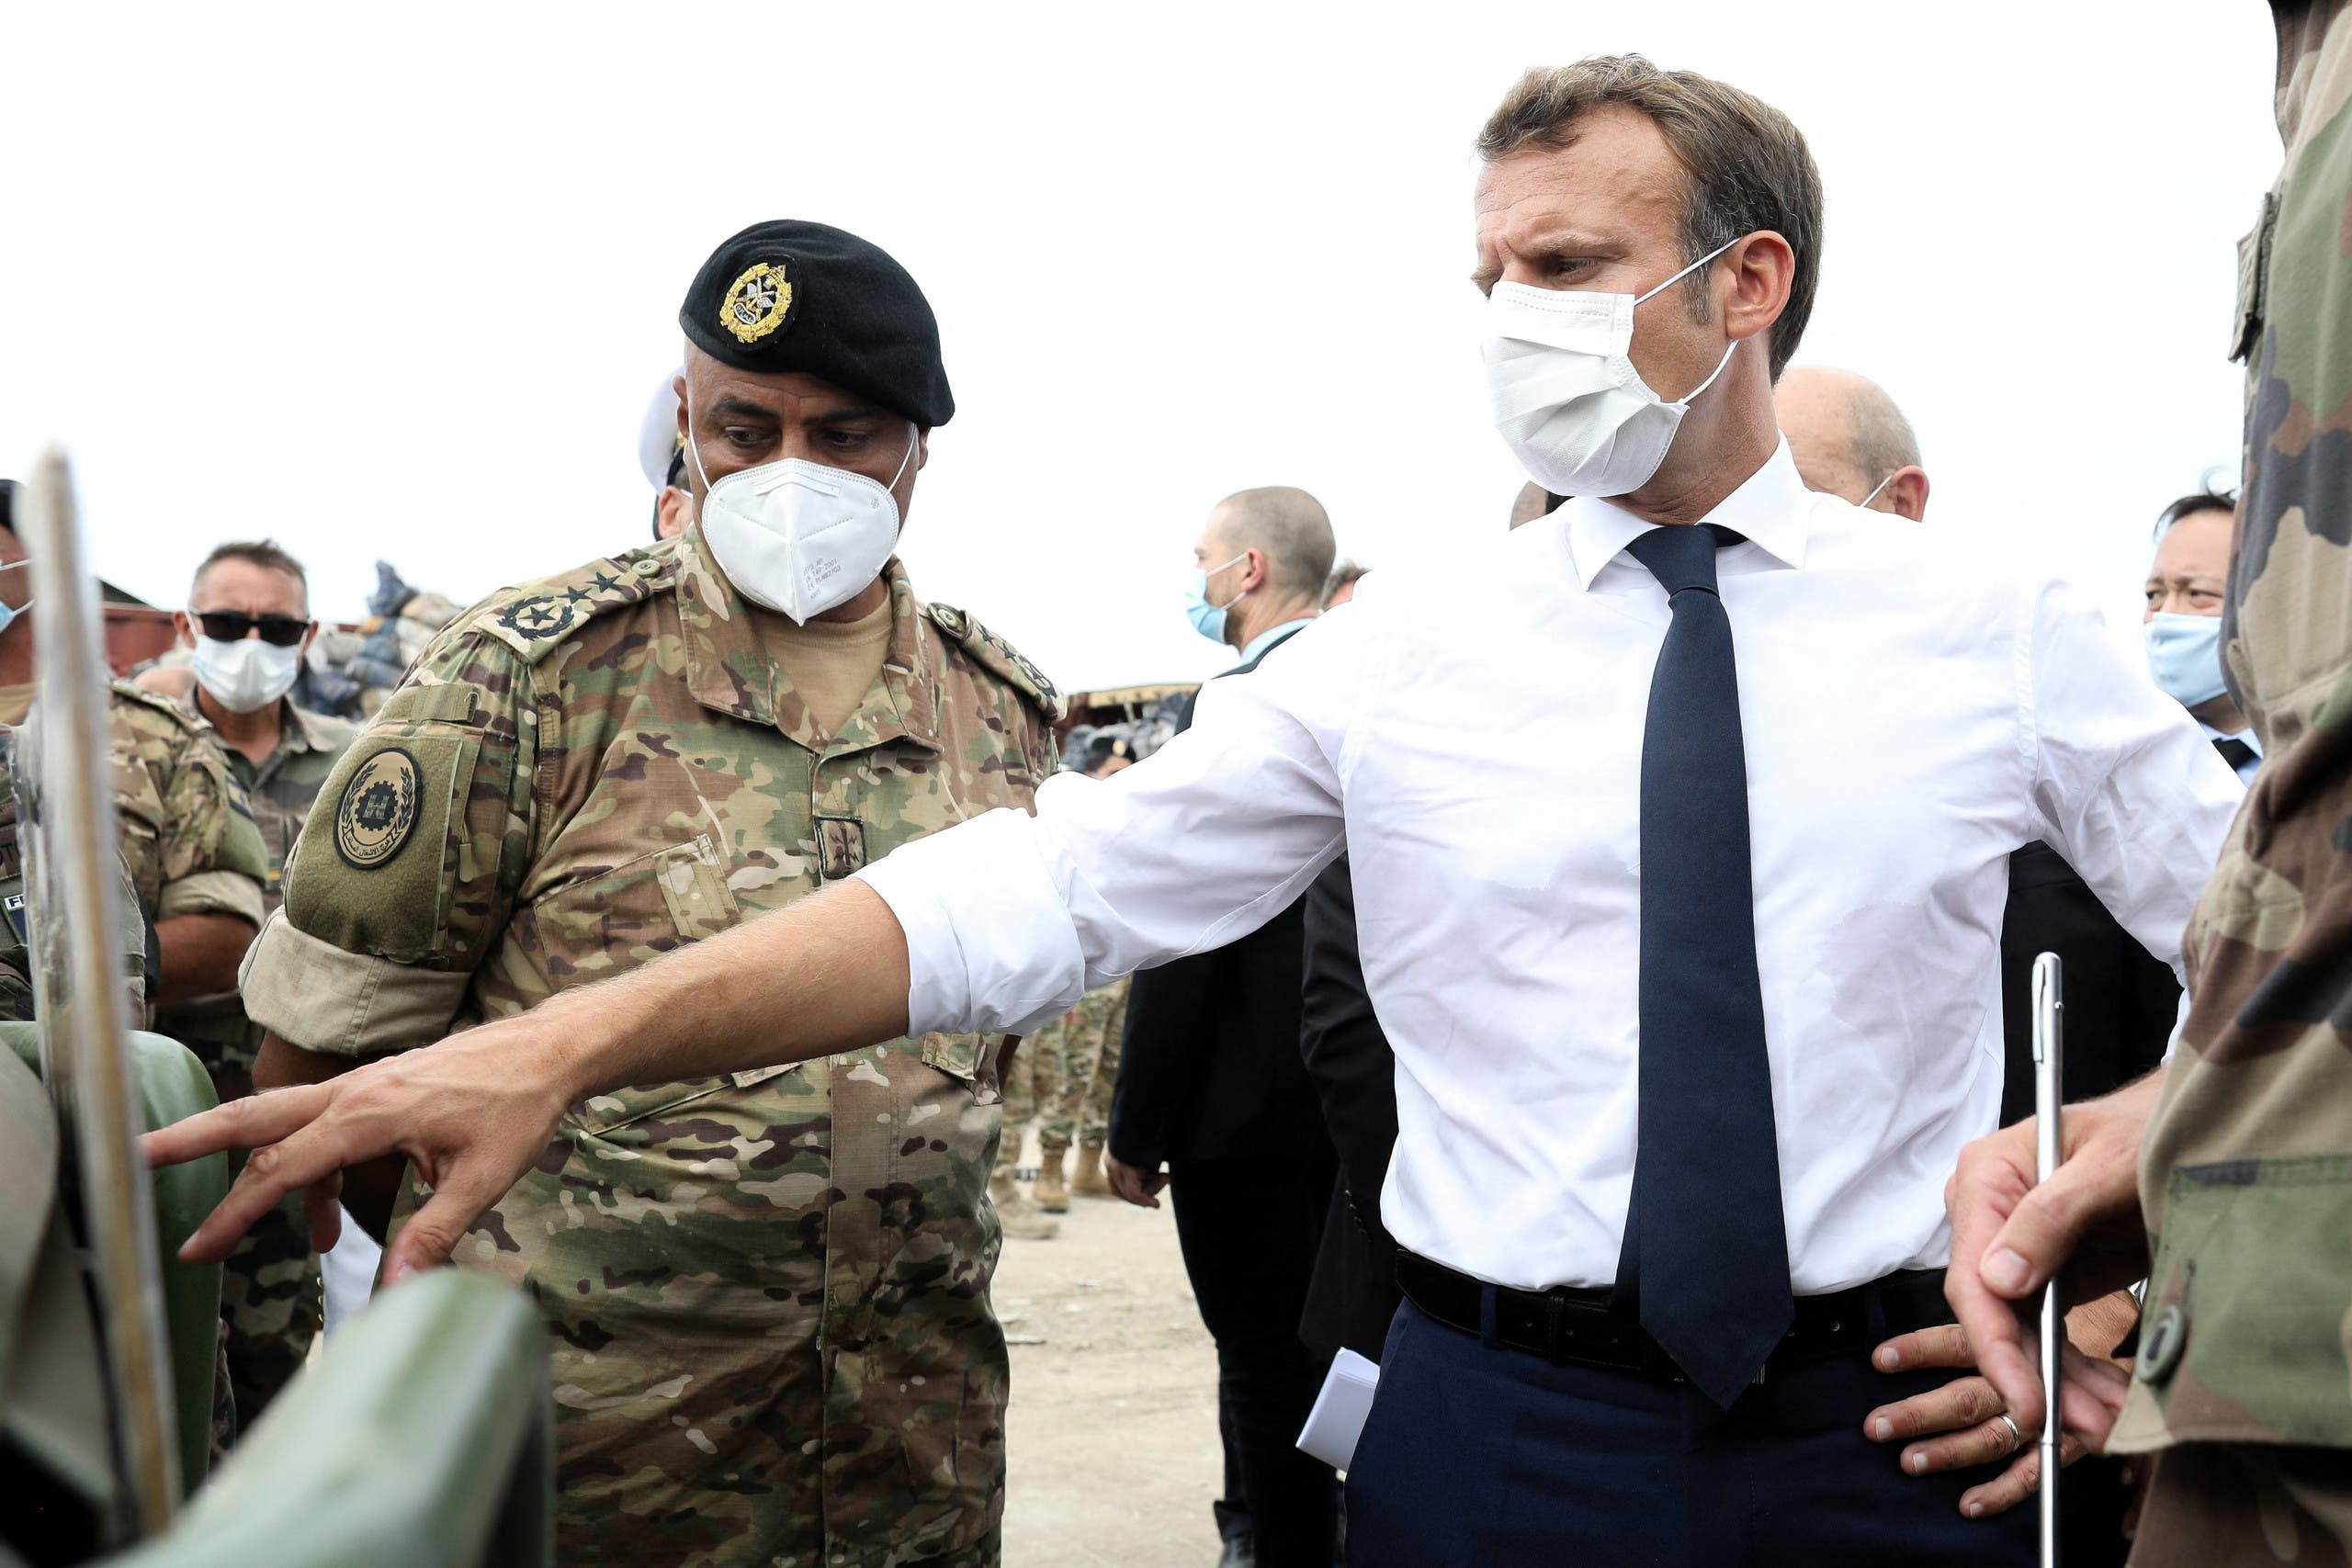 French President Emmanuel Macron meets members of the military mobilised for the reconstruction of the port of Beirut, in Beirut, Lebanon September 1, 2020. (Reuters)